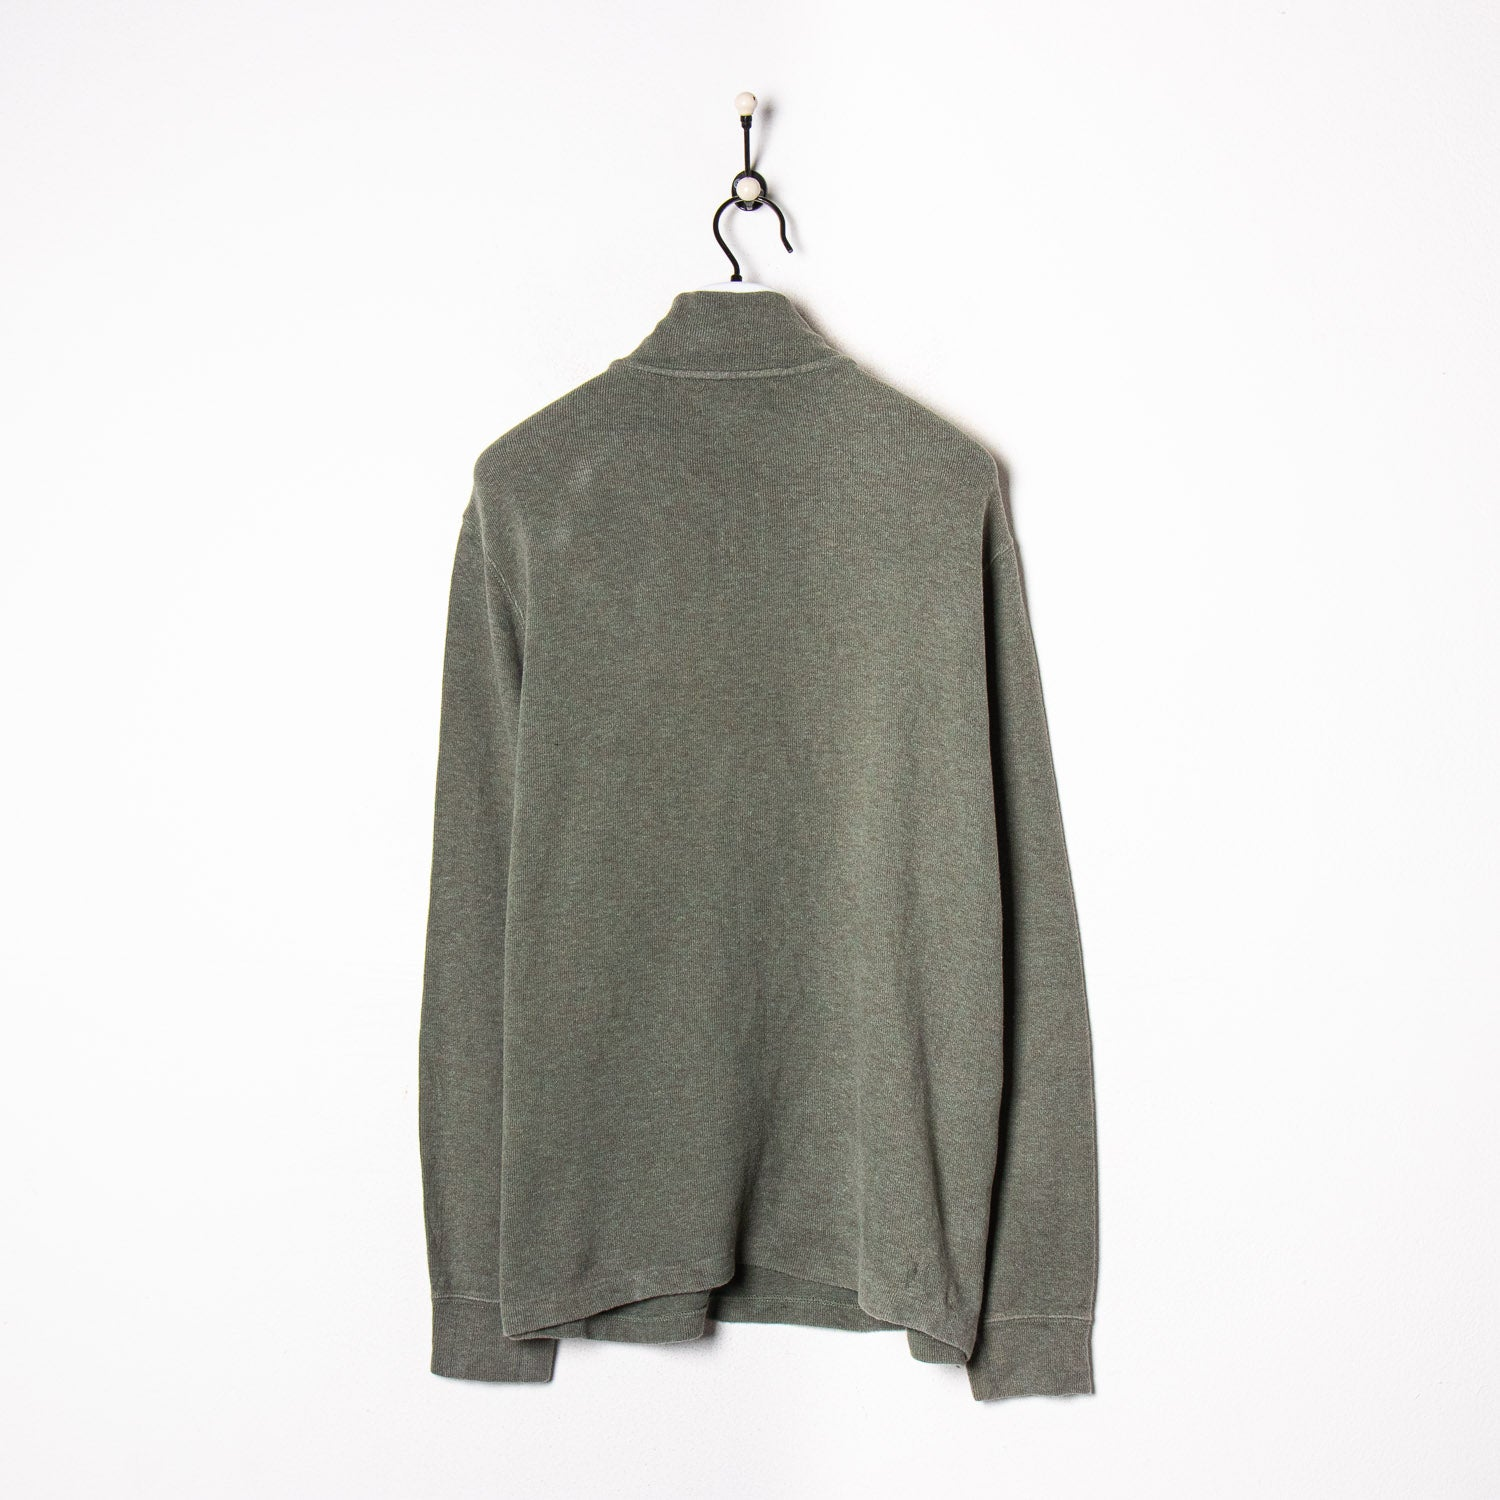 Buy Vintage Nike Clothing – True Vintage 764d01678